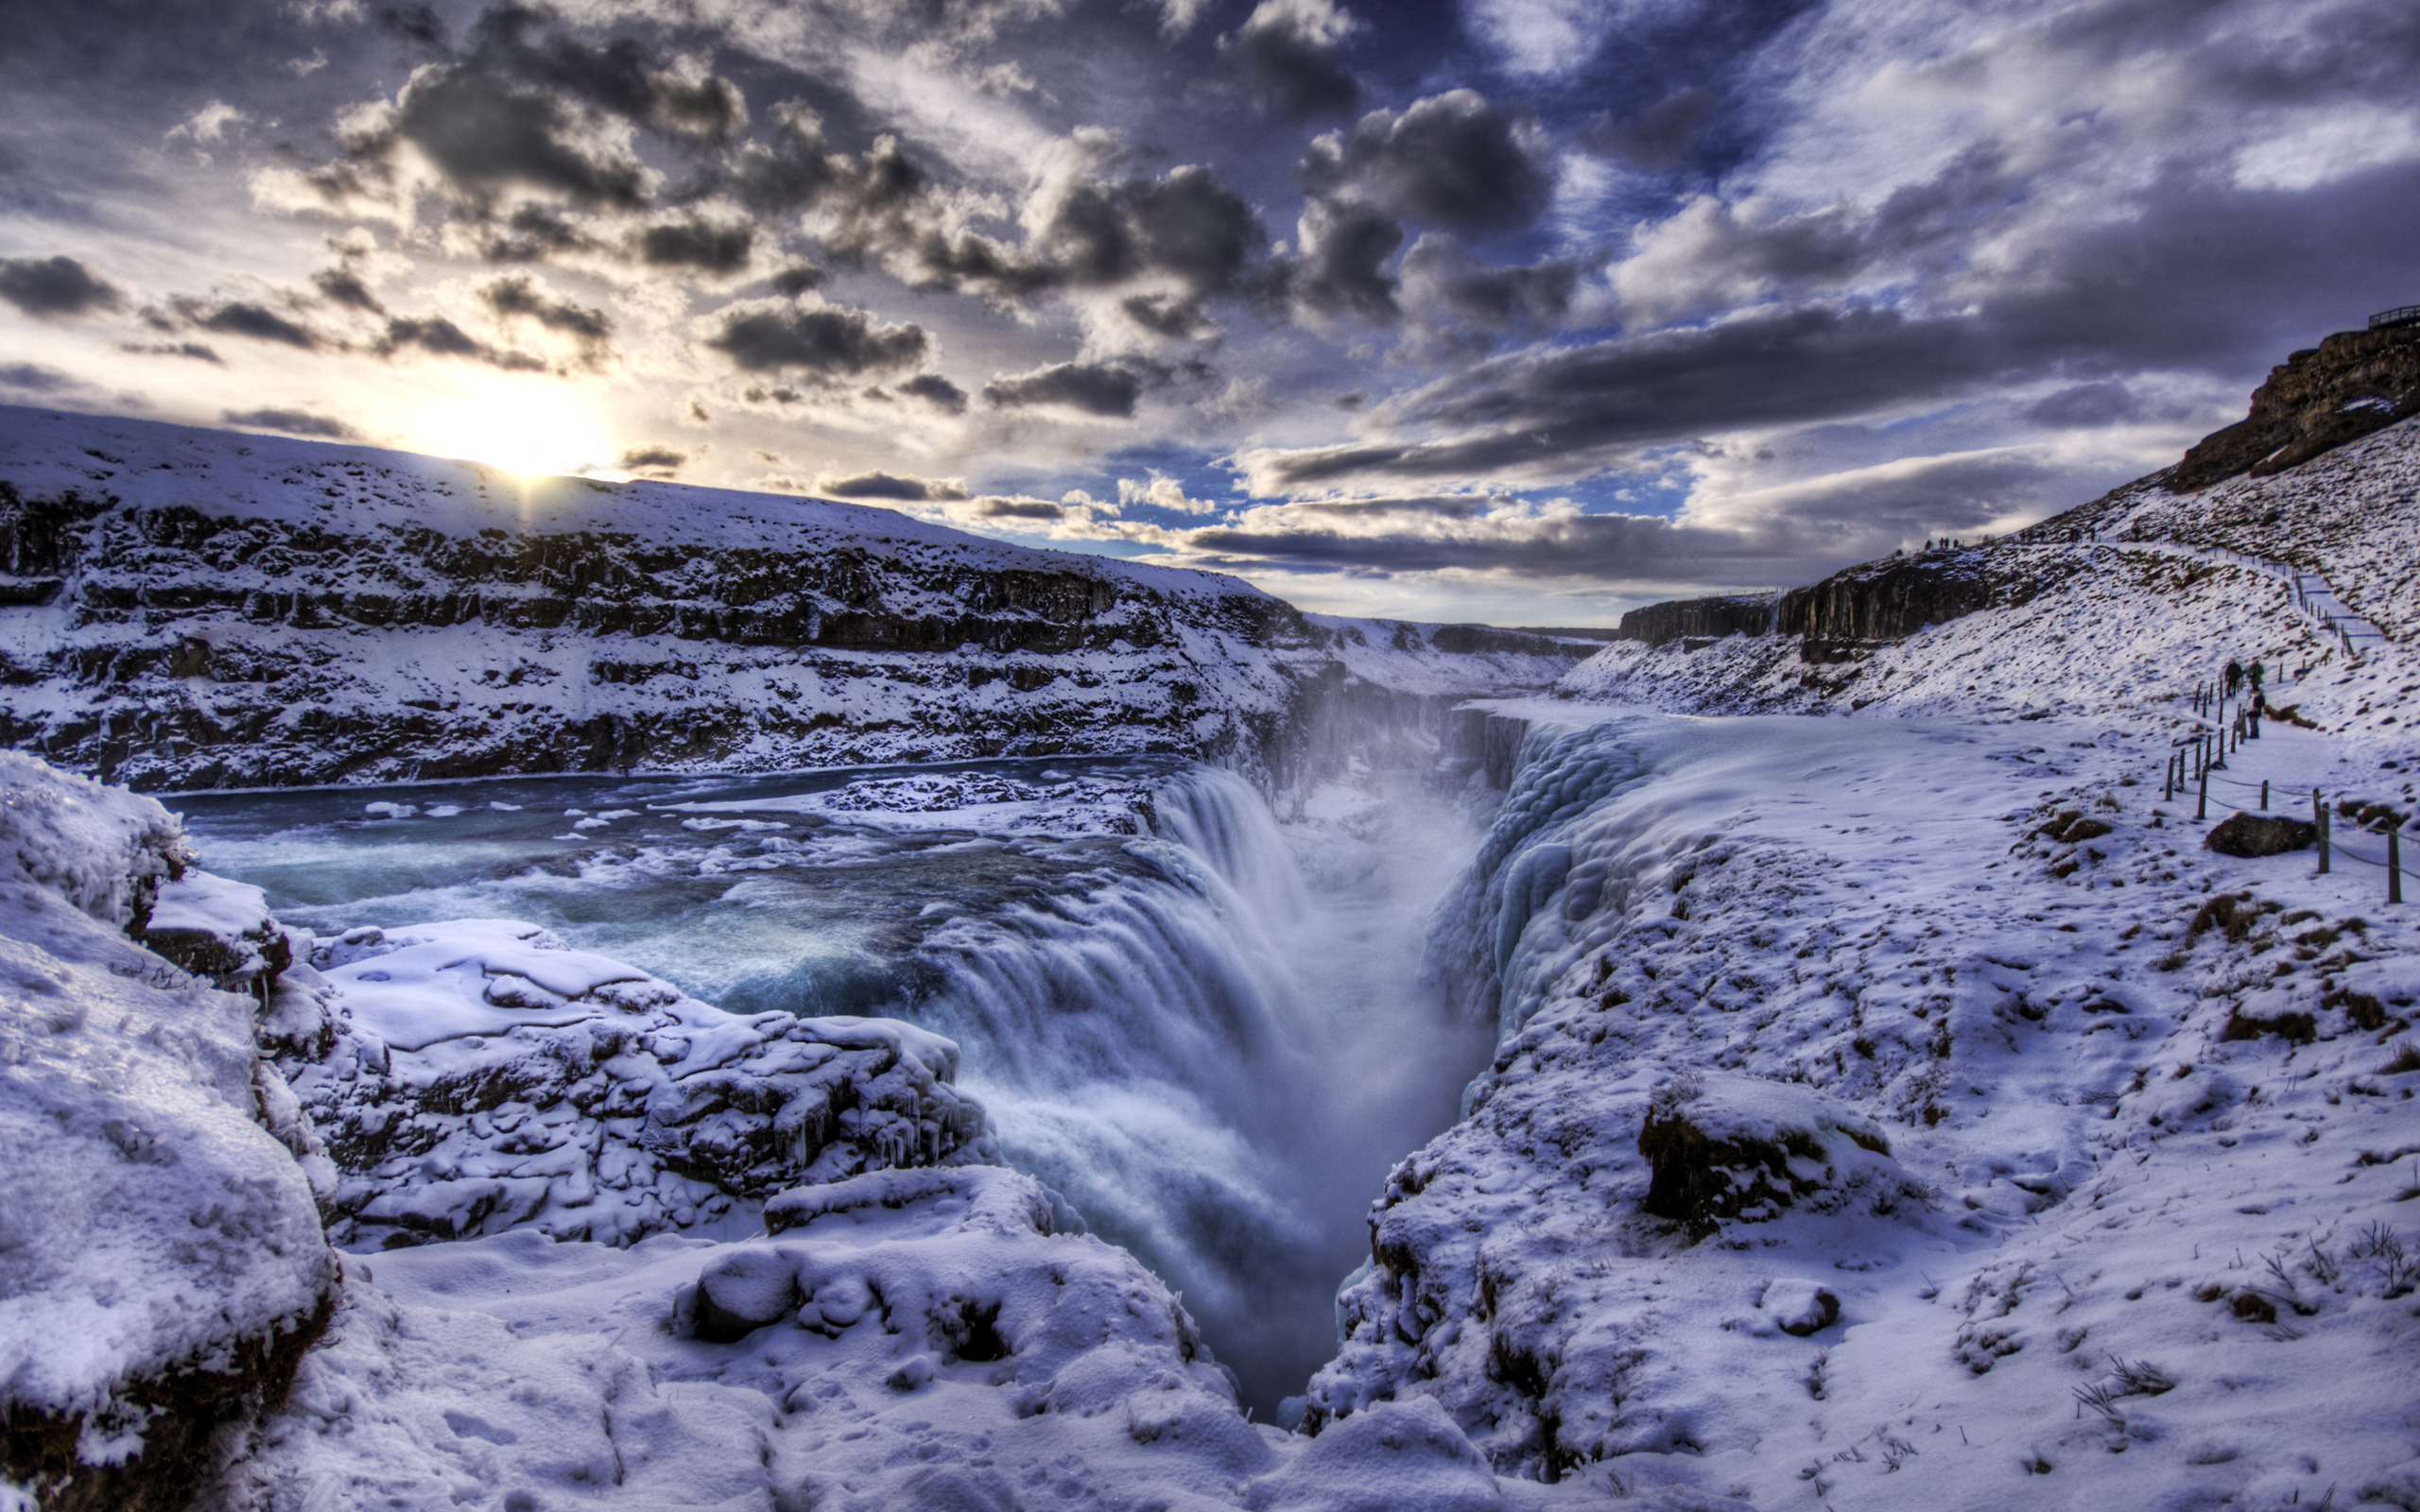 The Waterfall Crevice - Iceland